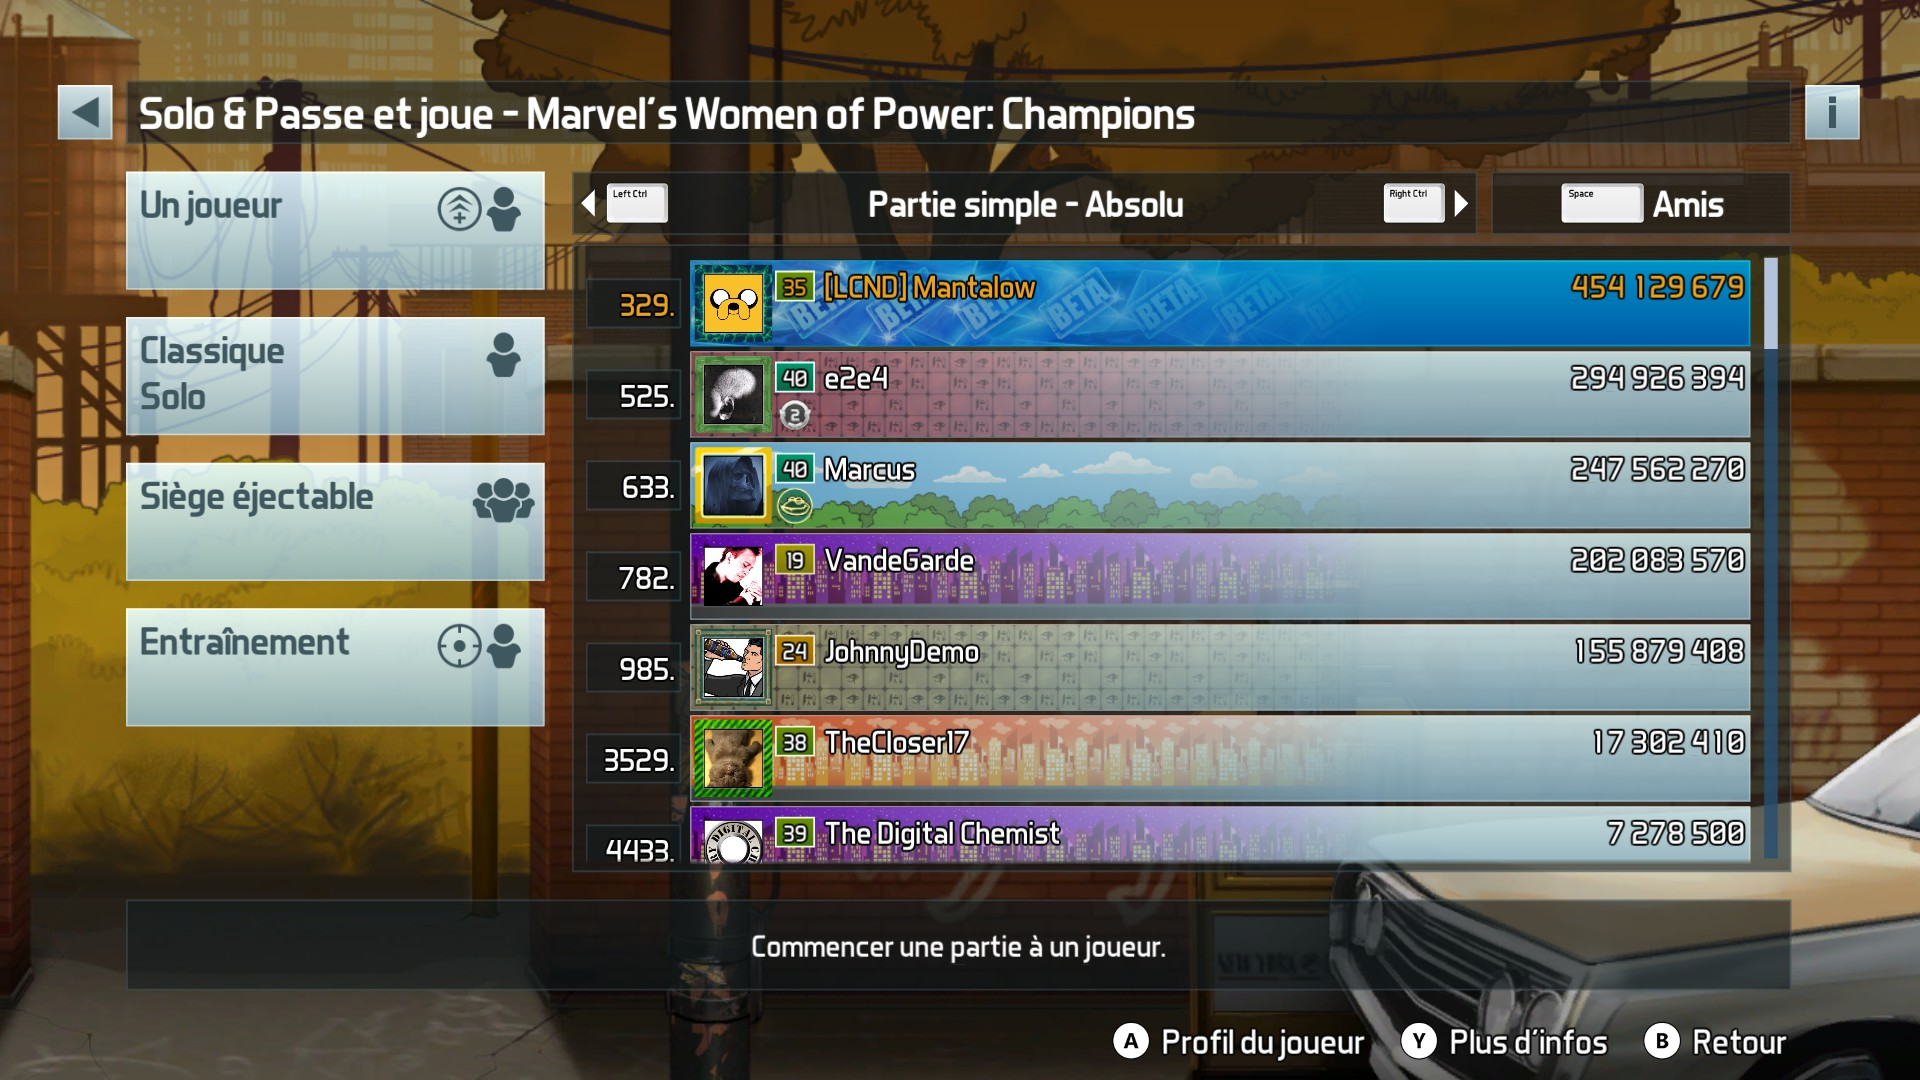 Mantalow: Pinball FX3: Marvel's Women of Power: Champions (PC) 454,129,679 points on 2018-01-17 10:15:42